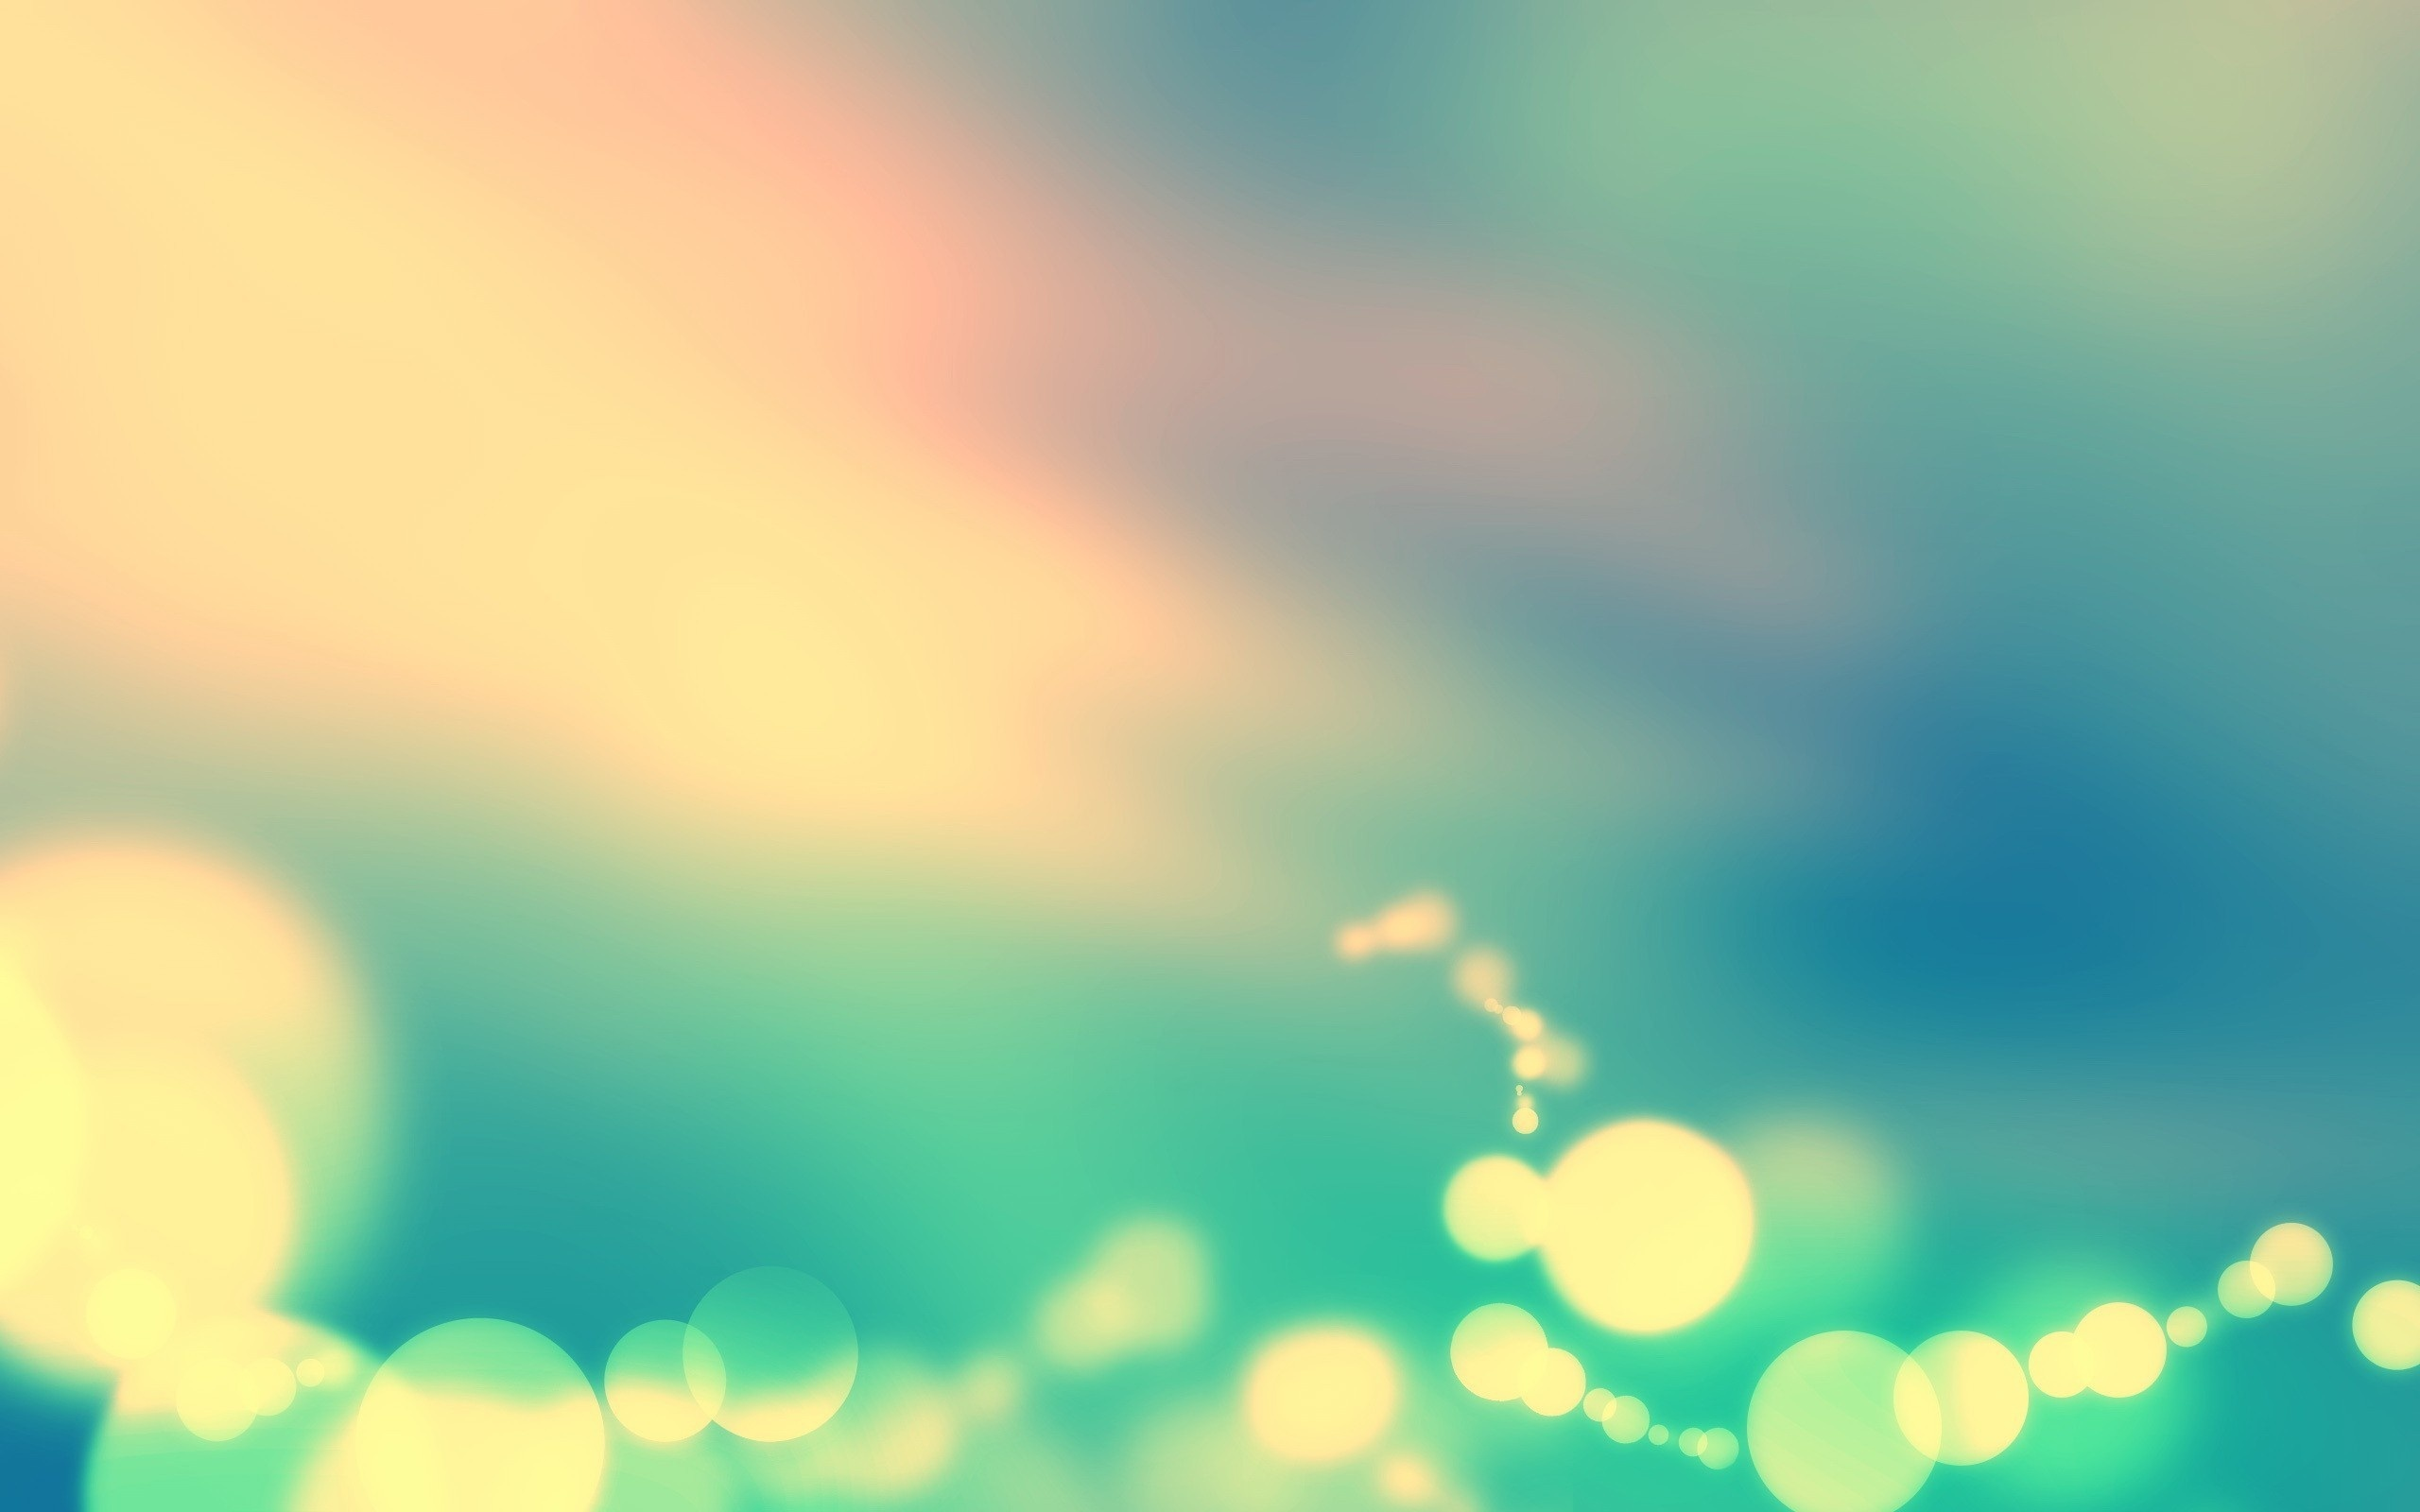 Subtle IOS7 Wallpaper